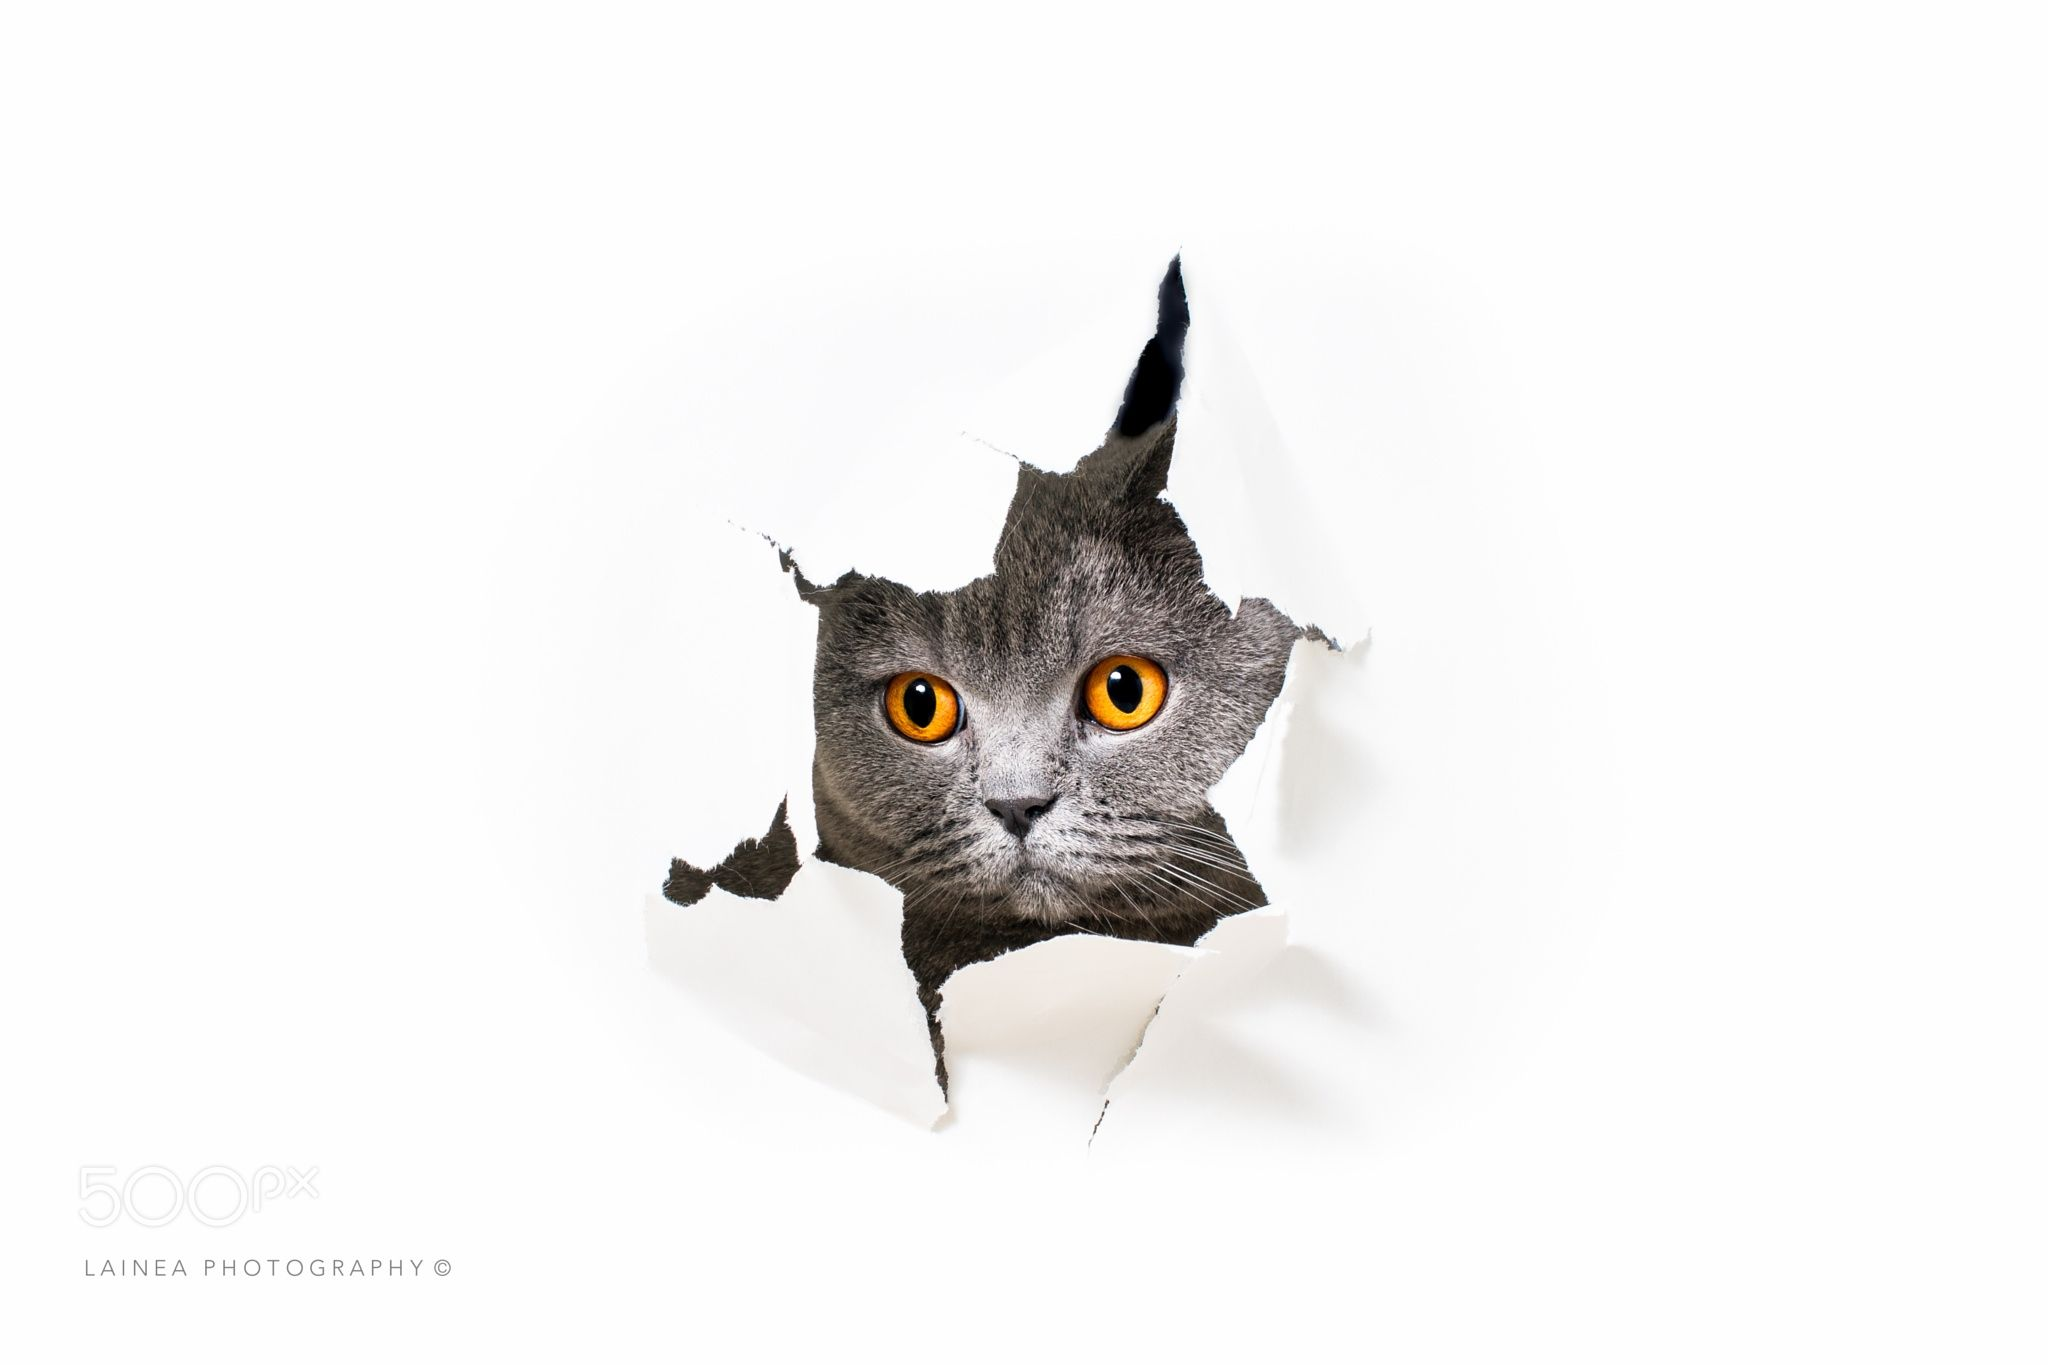 Cat Lookin Out A Hole On Paper British Shorthair Lookin Out A Hole On White Paper A Torn White Paper Grey Ca Cats British Shorthair Cats British Shorthair